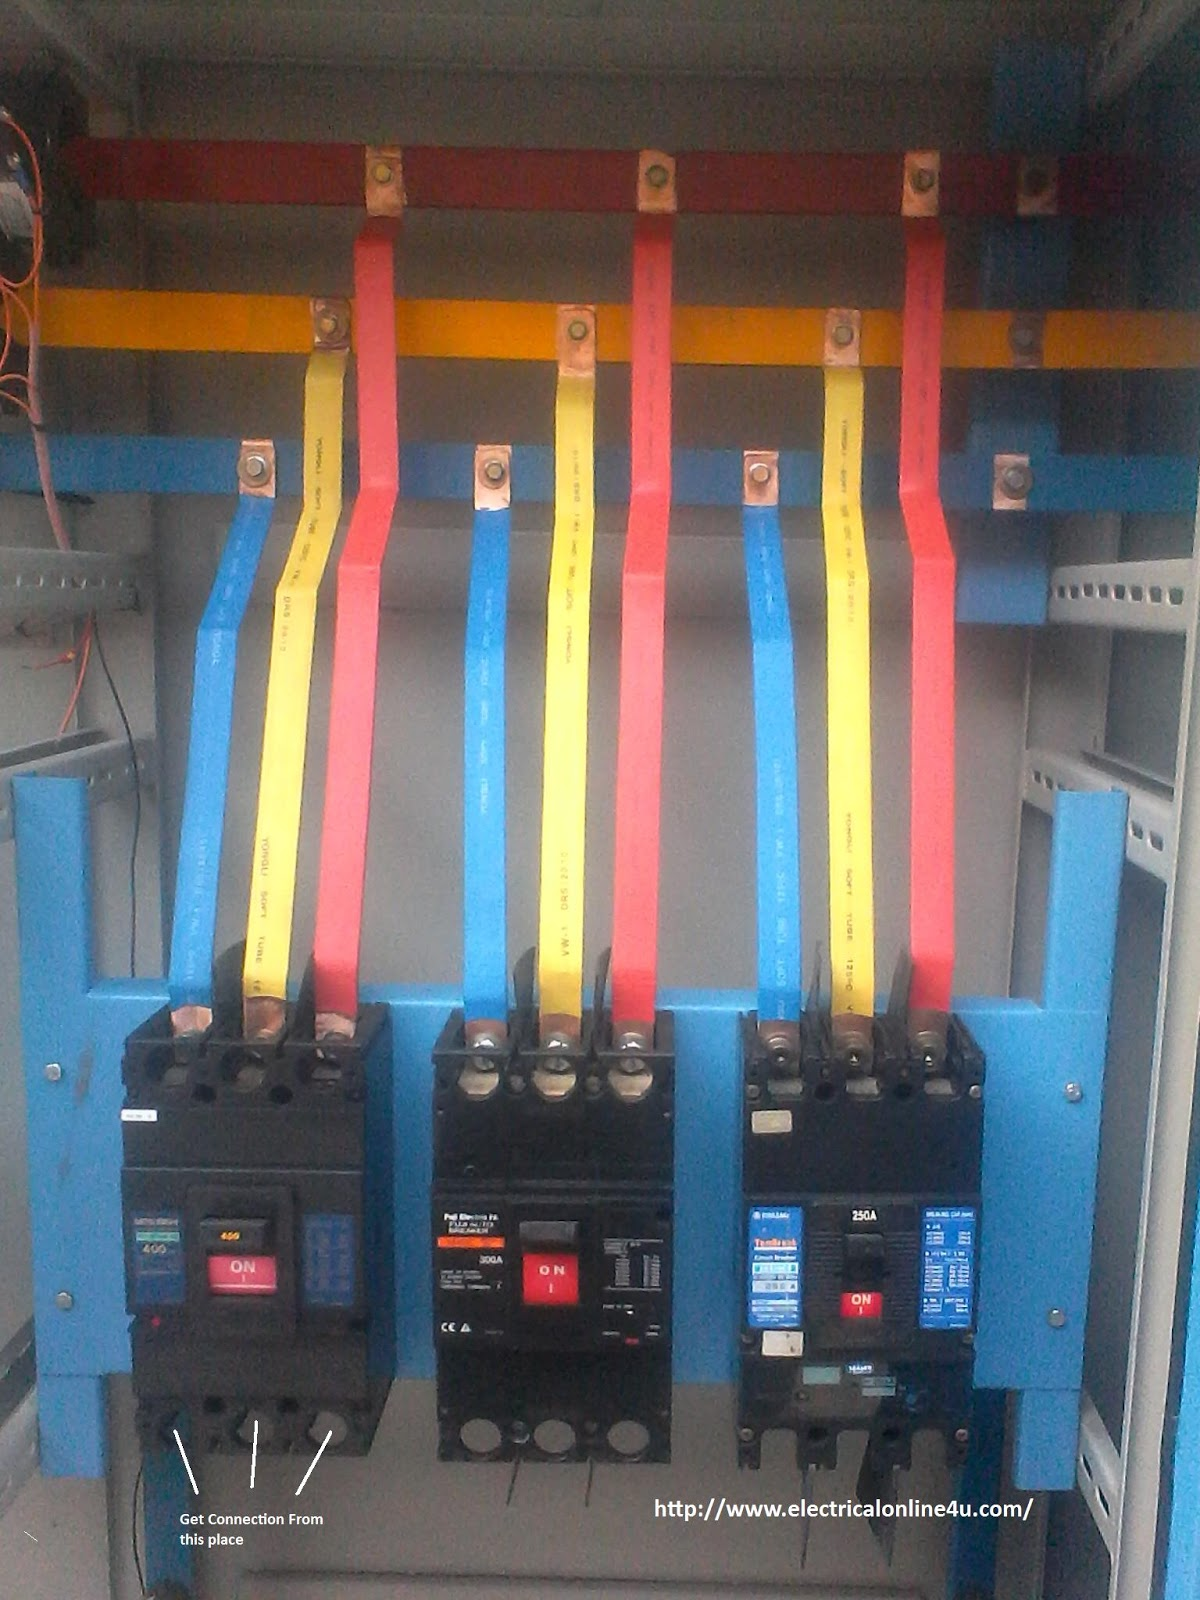 Circuit%2BBreaker%2BInstallation%2BFor%2BThree%2BPhase%2BSupply circuit breaker installation for three phase supply 3 phase schneider mccb motorized wiring diagram at cita.asia